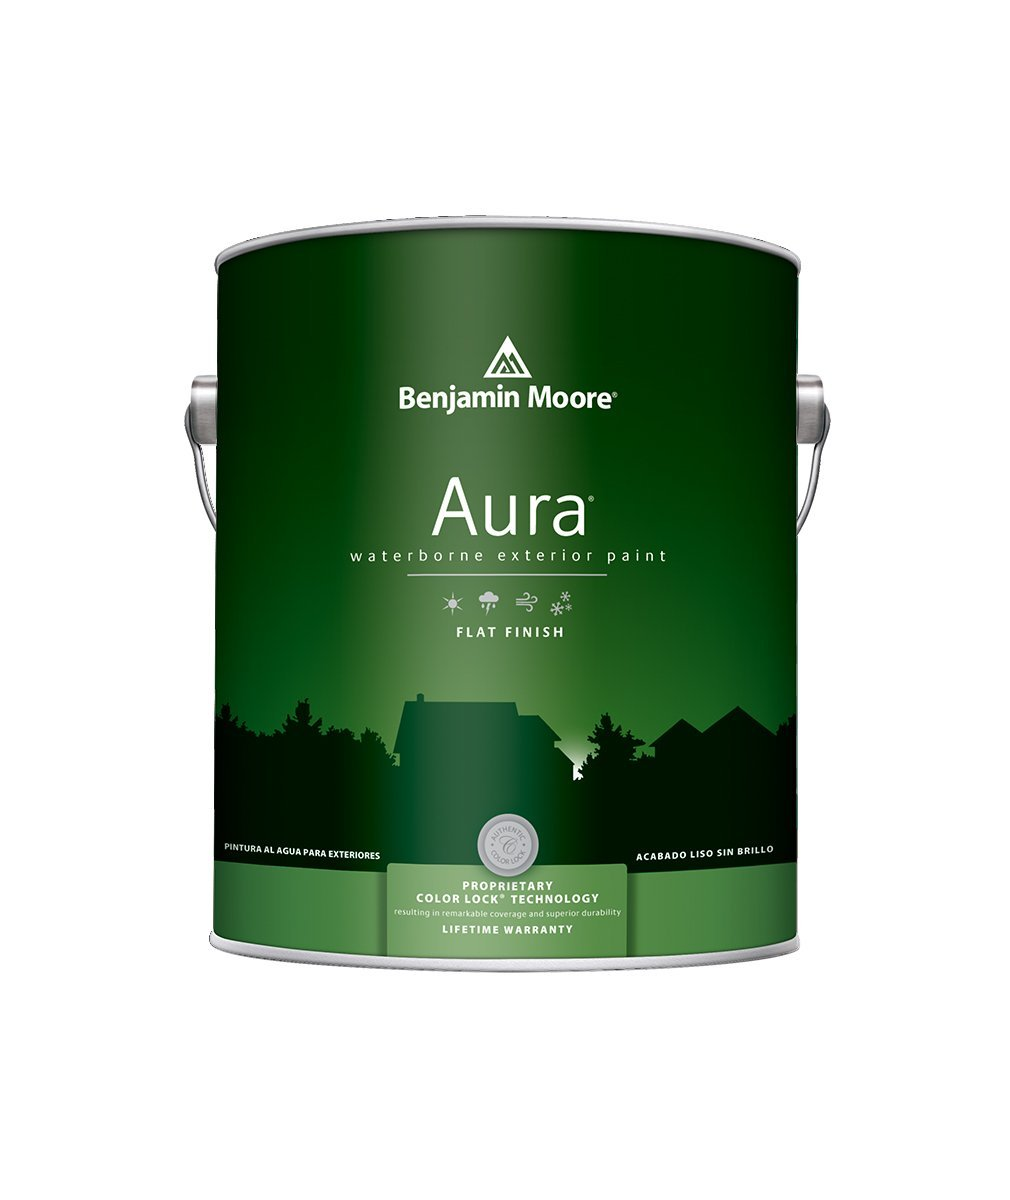 Benjamin Moore Aura Exterior Flat Paint available at Mallory Paint Stores.